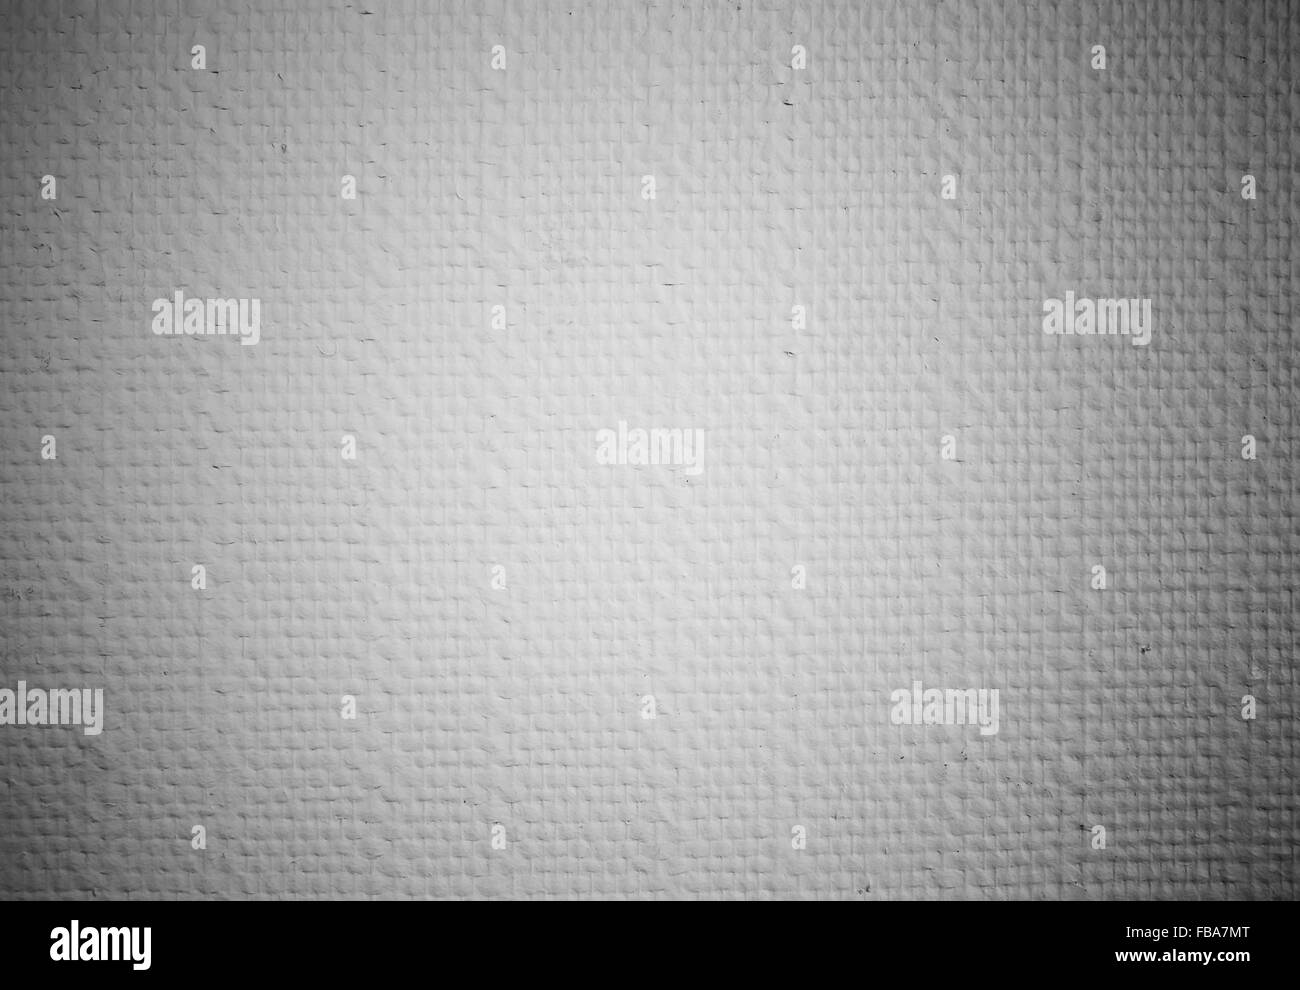 White Embossed Paintable Wallpaper, Background Photo Texture With Vignette  Effect